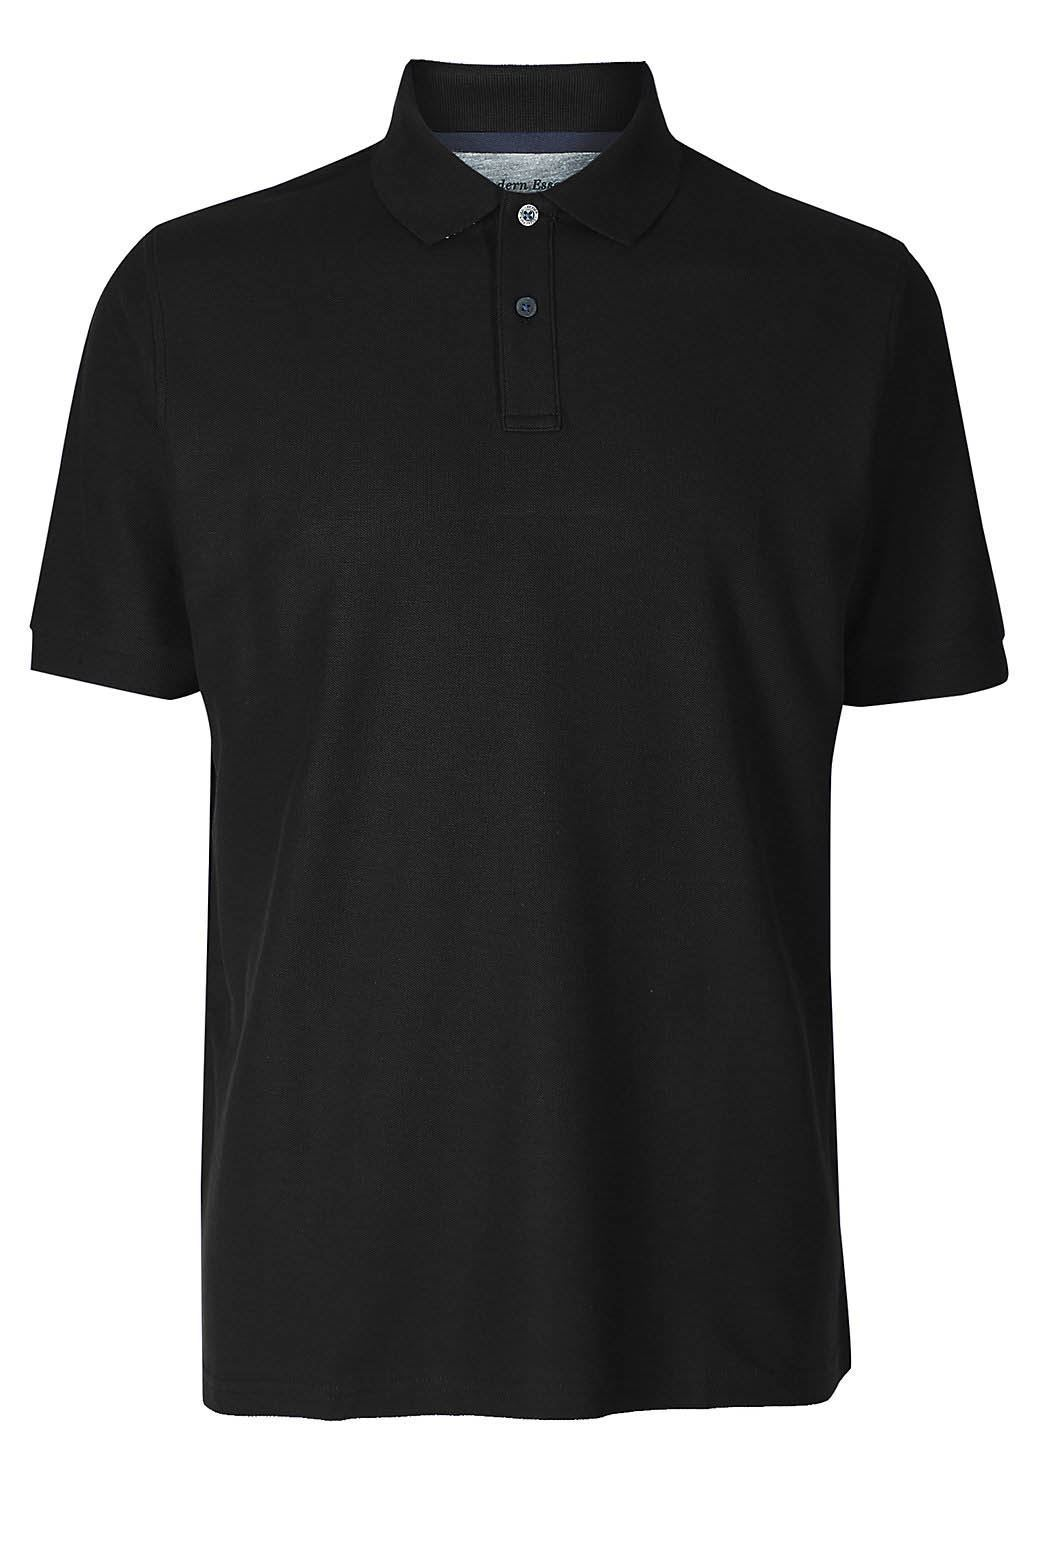 MARKS-amp-SPENCER-Mens-Classic-Cotton-Polo-Shirt-M-amp-S-All-Colours-and-Large-Sizes thumbnail 6